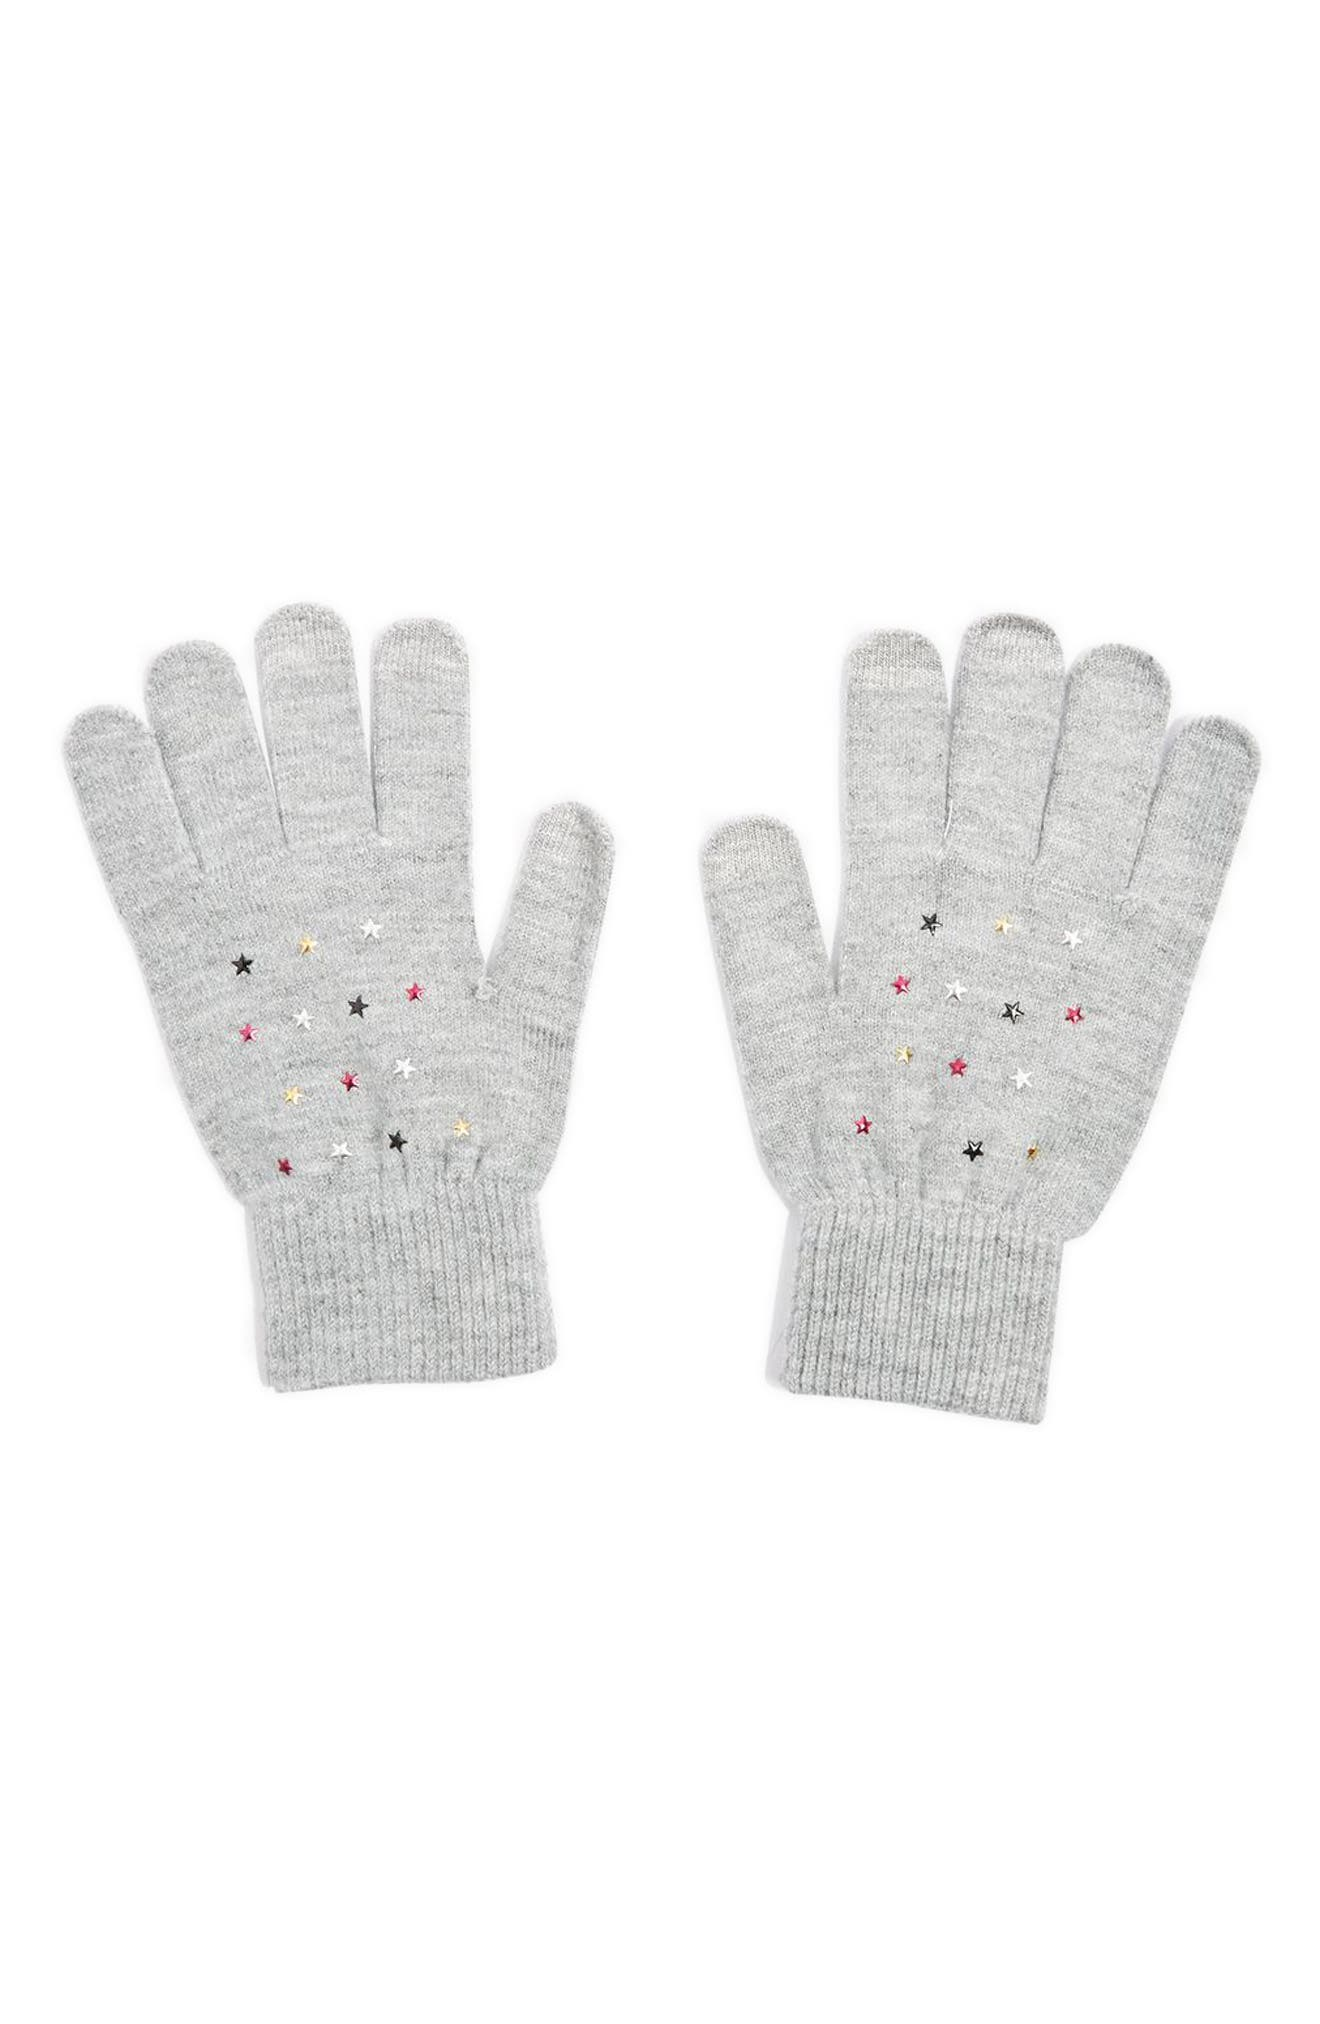 Knit Star Gloves,                             Main thumbnail 1, color,